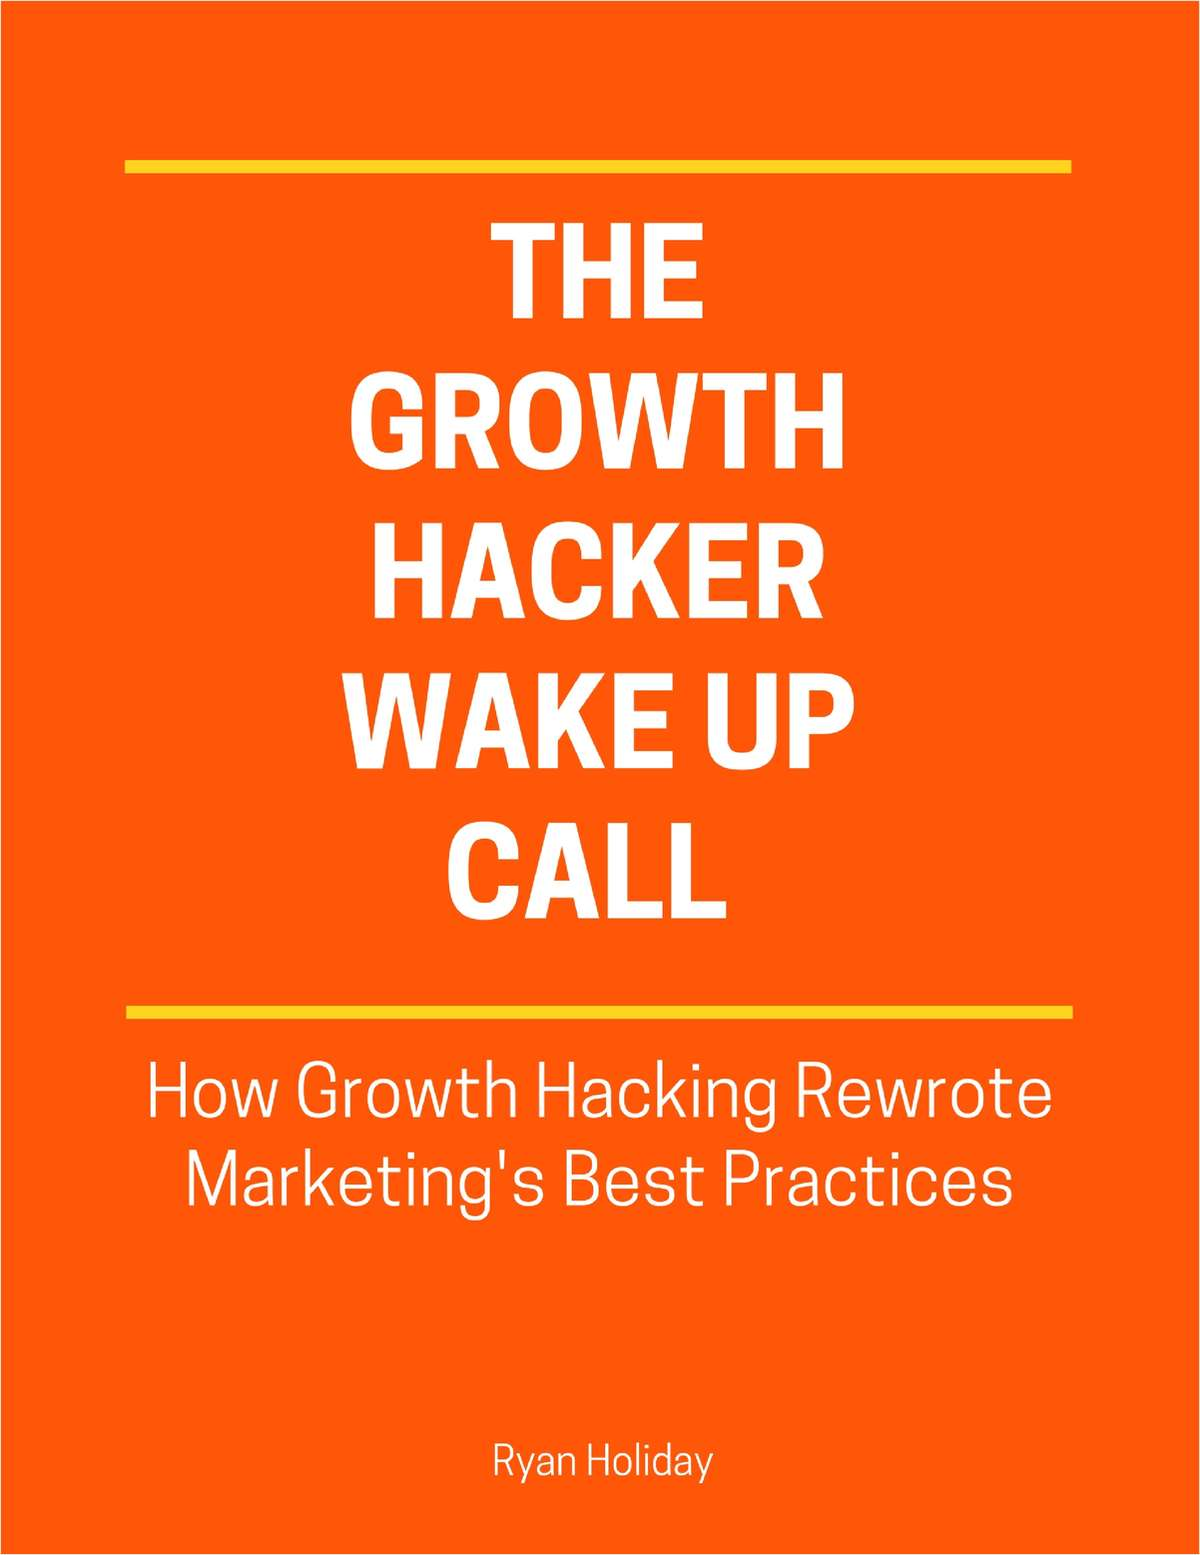 The Growth Hackers Wake Up Call